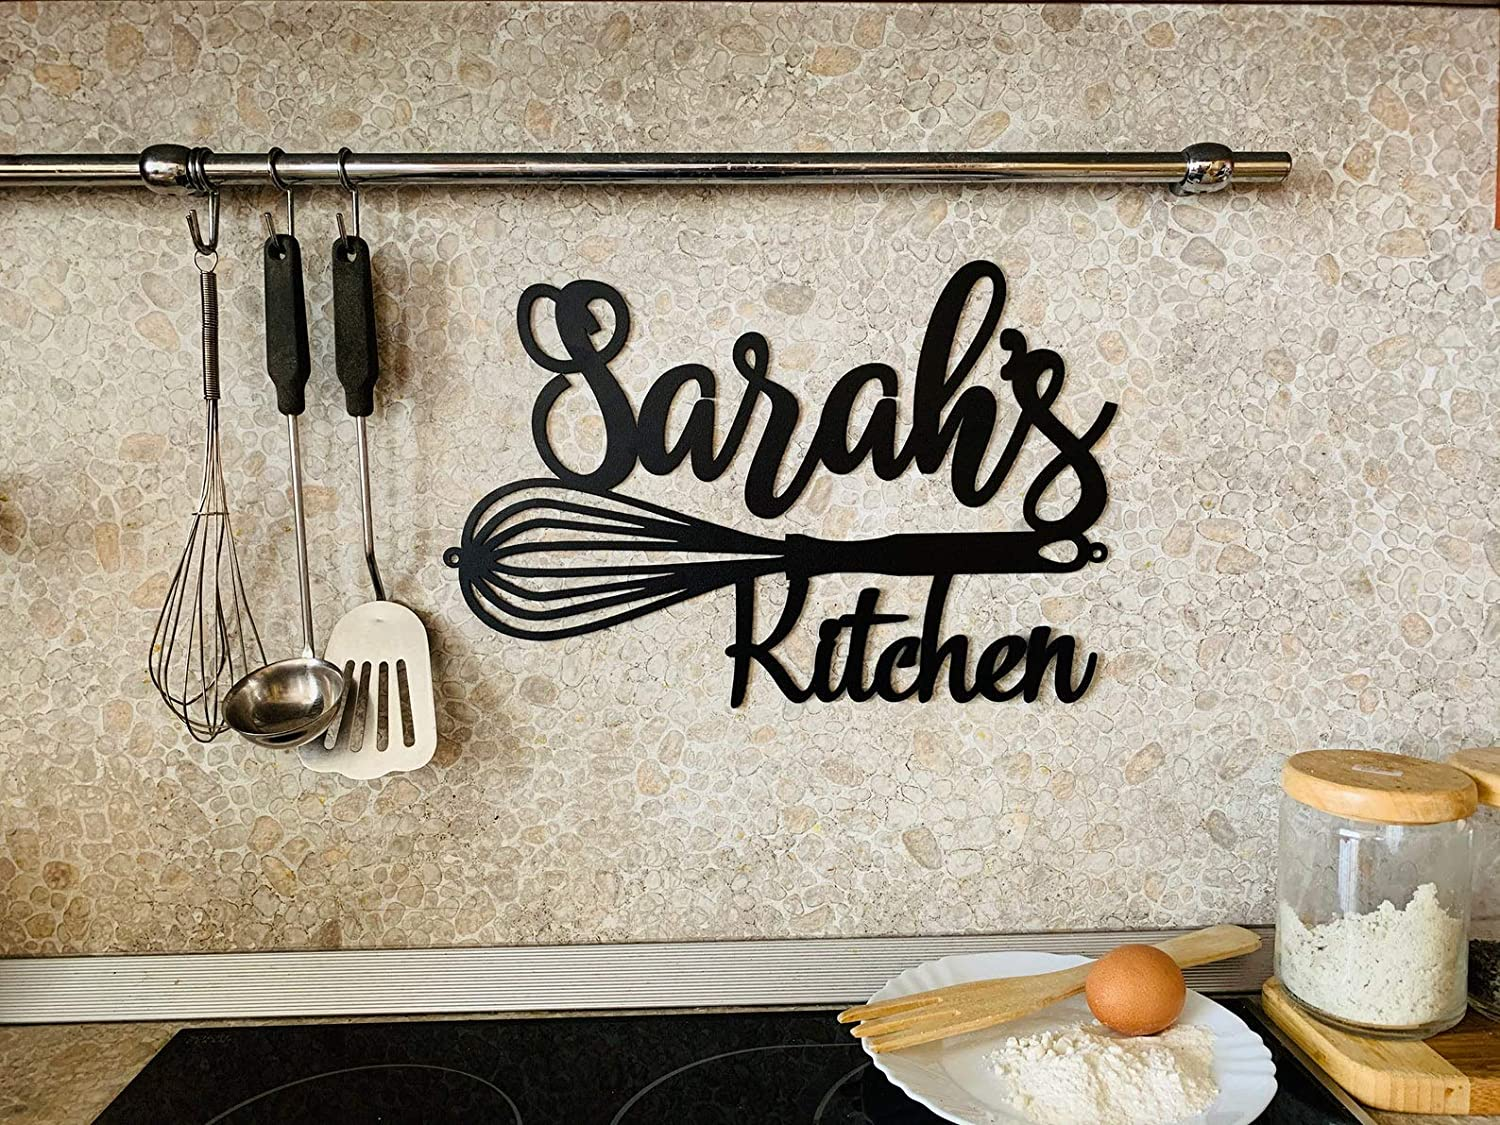 Personalized Metal Sign for Kitchen, Custom Kitchen Name Sign, Wall Art Decor, Housewarming, Mothers Day Gift, Mom's Kitchen, Gift for Grandma, Farmhouse, Chef Name, Kitchen Wall Art, Kitchen Plaque